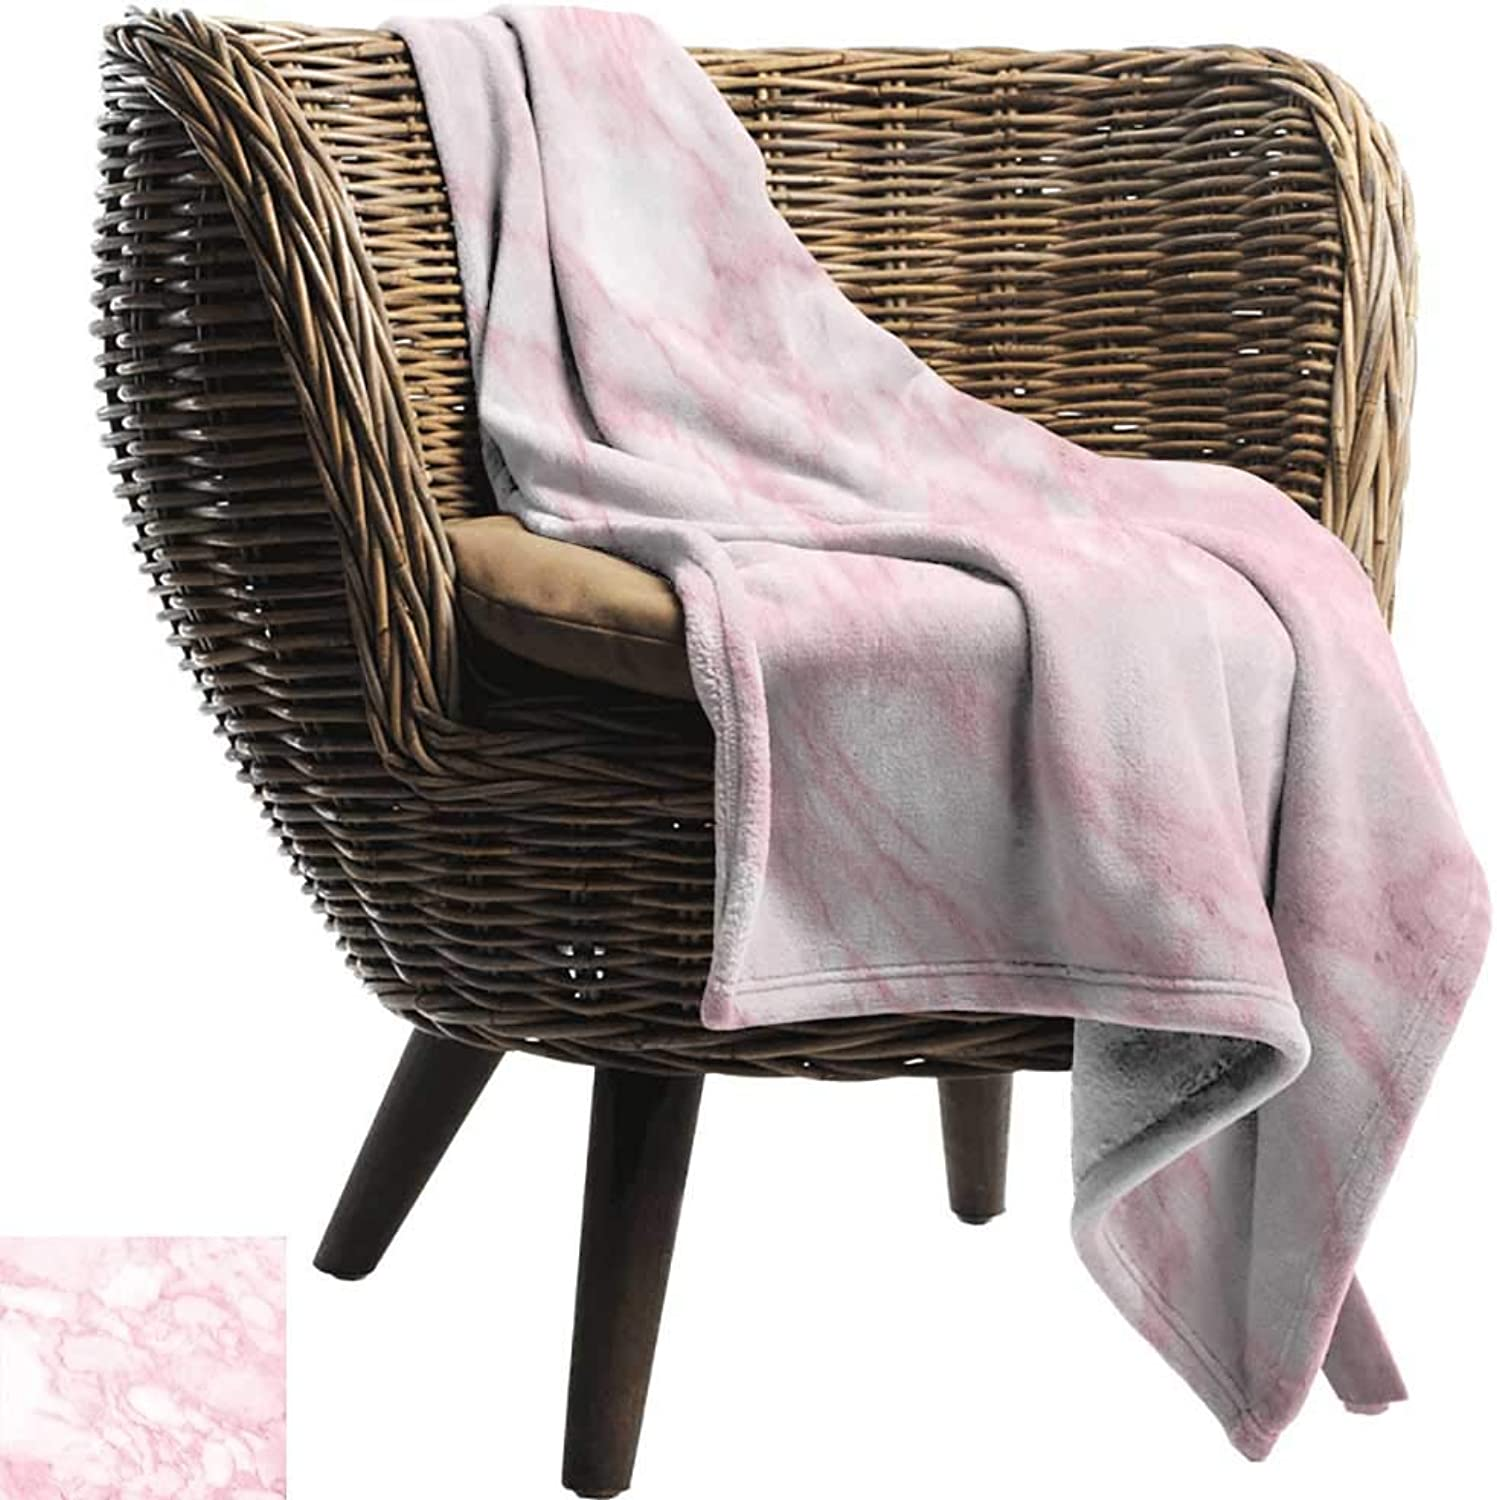 BelleAckerman Camping Blanket,Marble,Soft Granite Texture Old Fashion Space Stone Abstract Macro Scratches Girls Image,Light Pink,Flannel Blankets Made with Plush Microfiber 35 x60